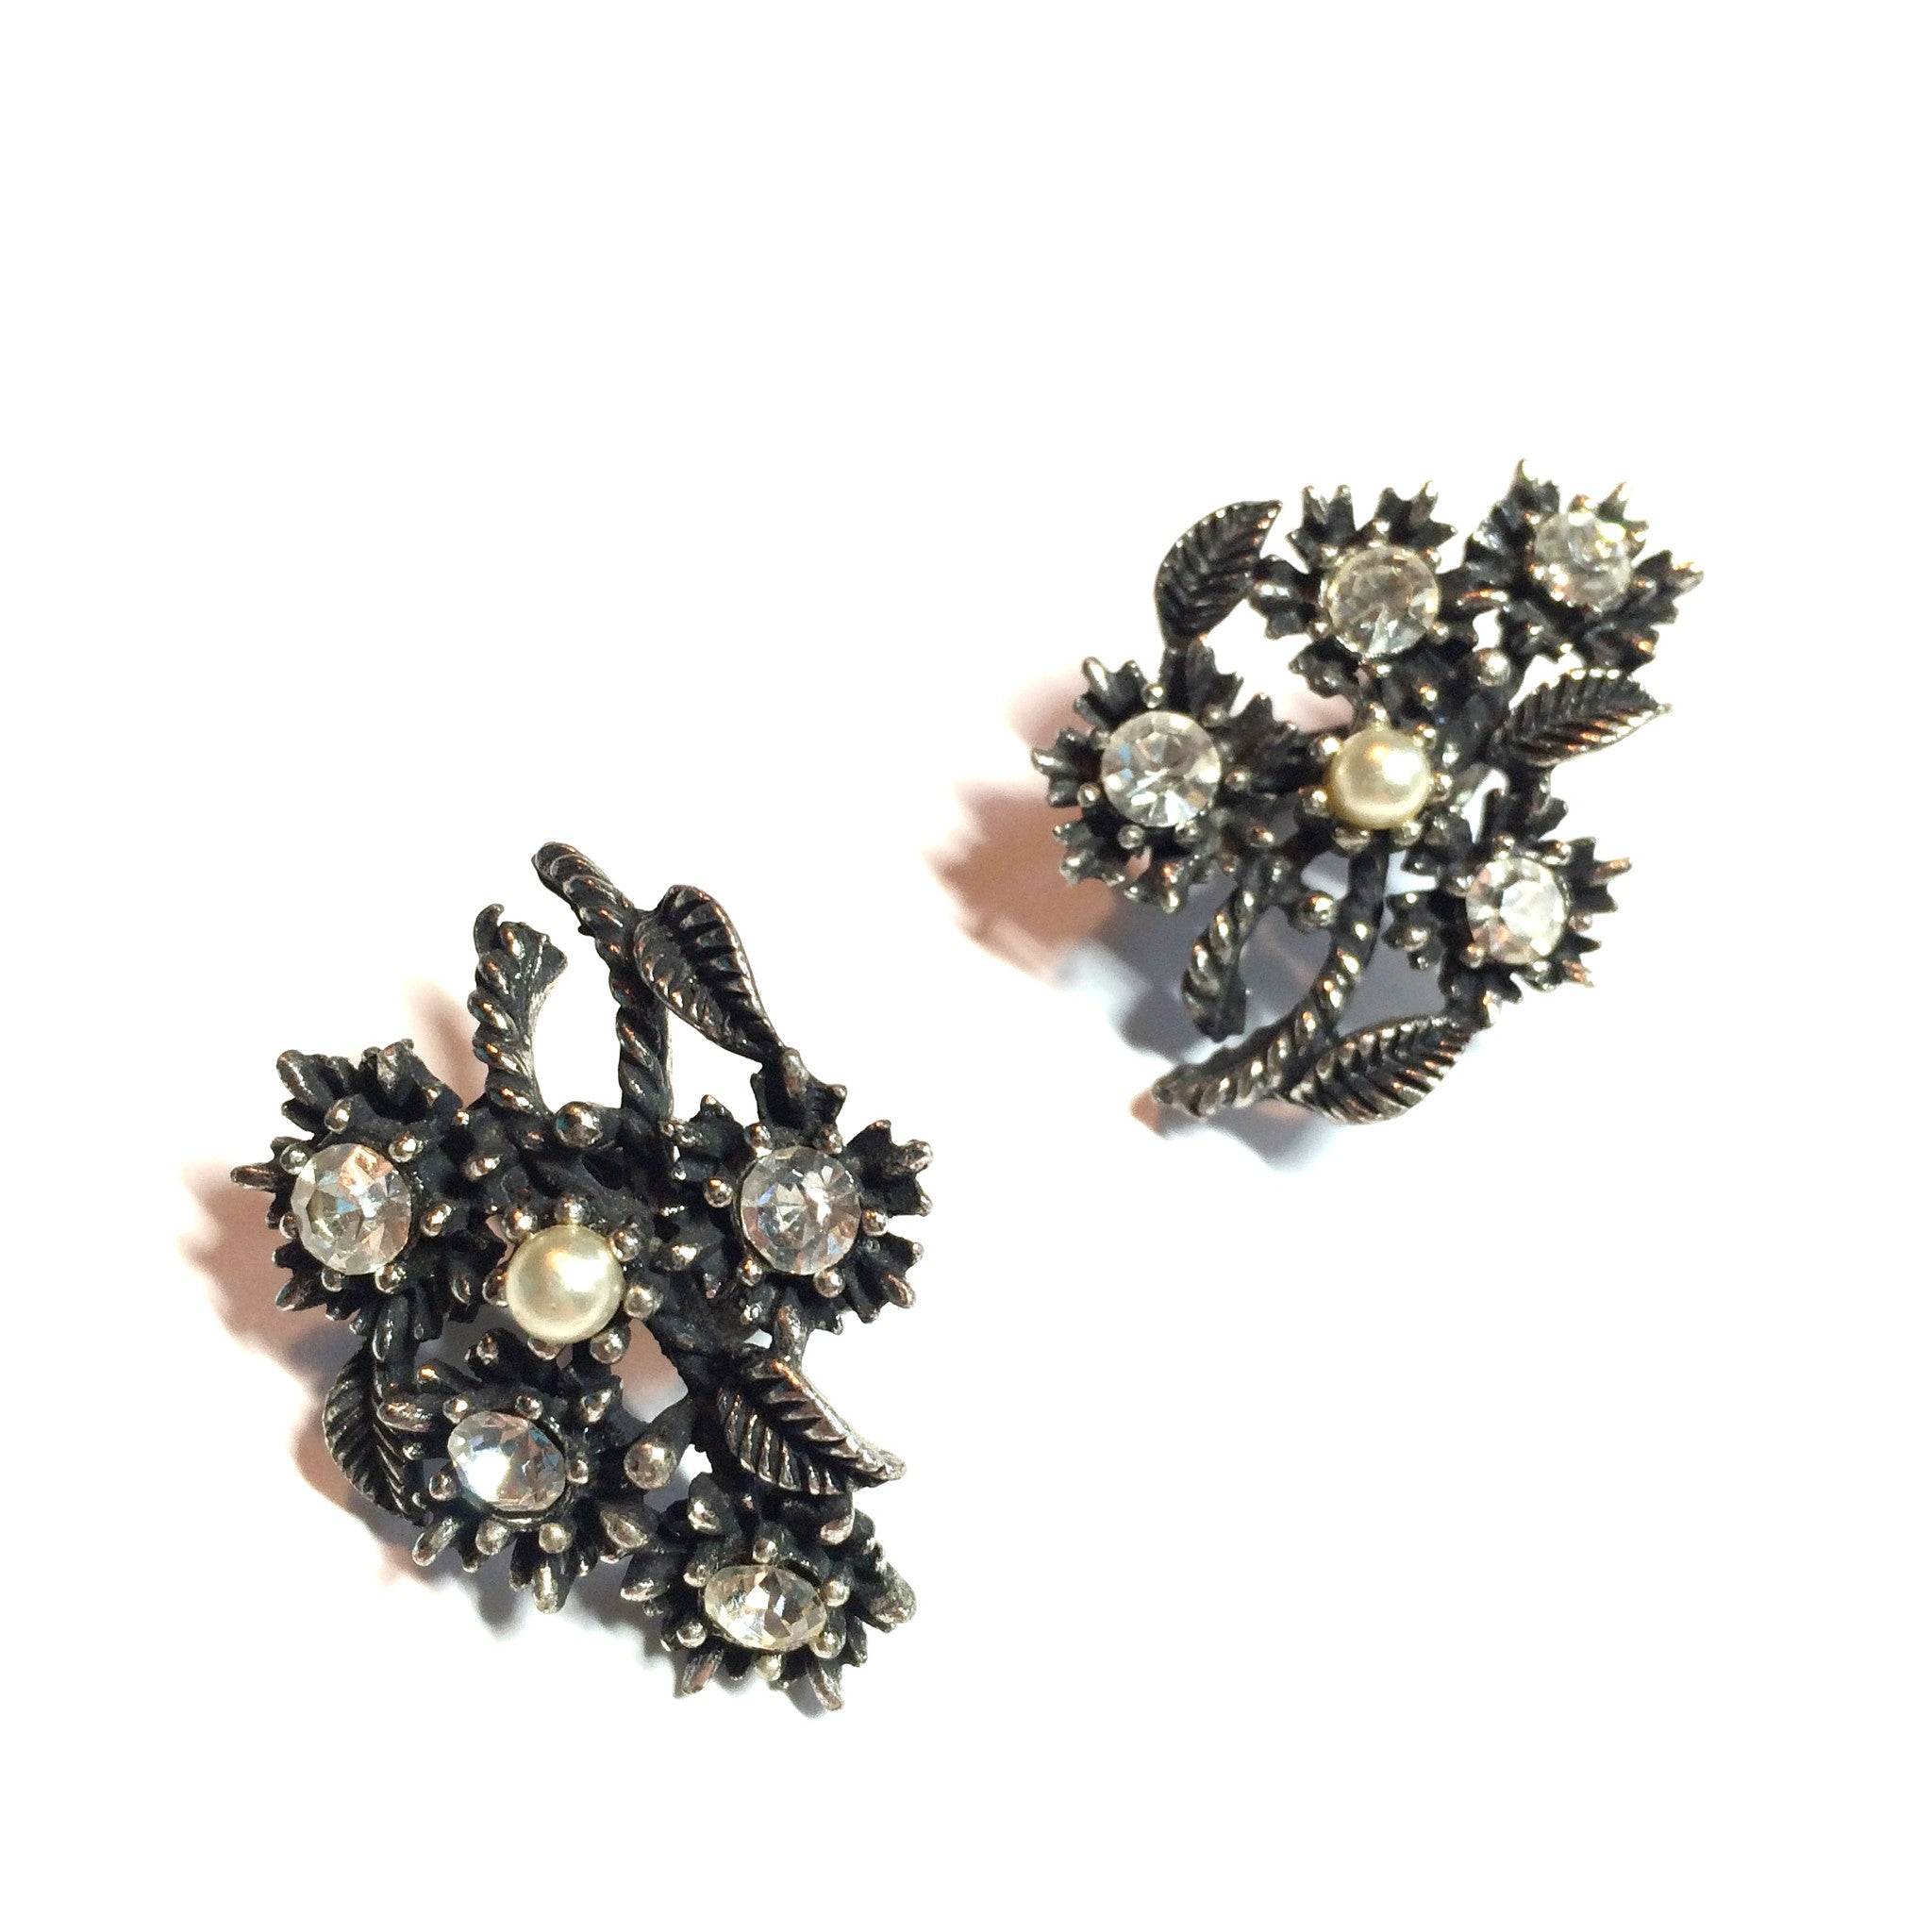 Rhinestone Dotted Japanned Silvertone Metal Clip Flower Earrings circa 1950s